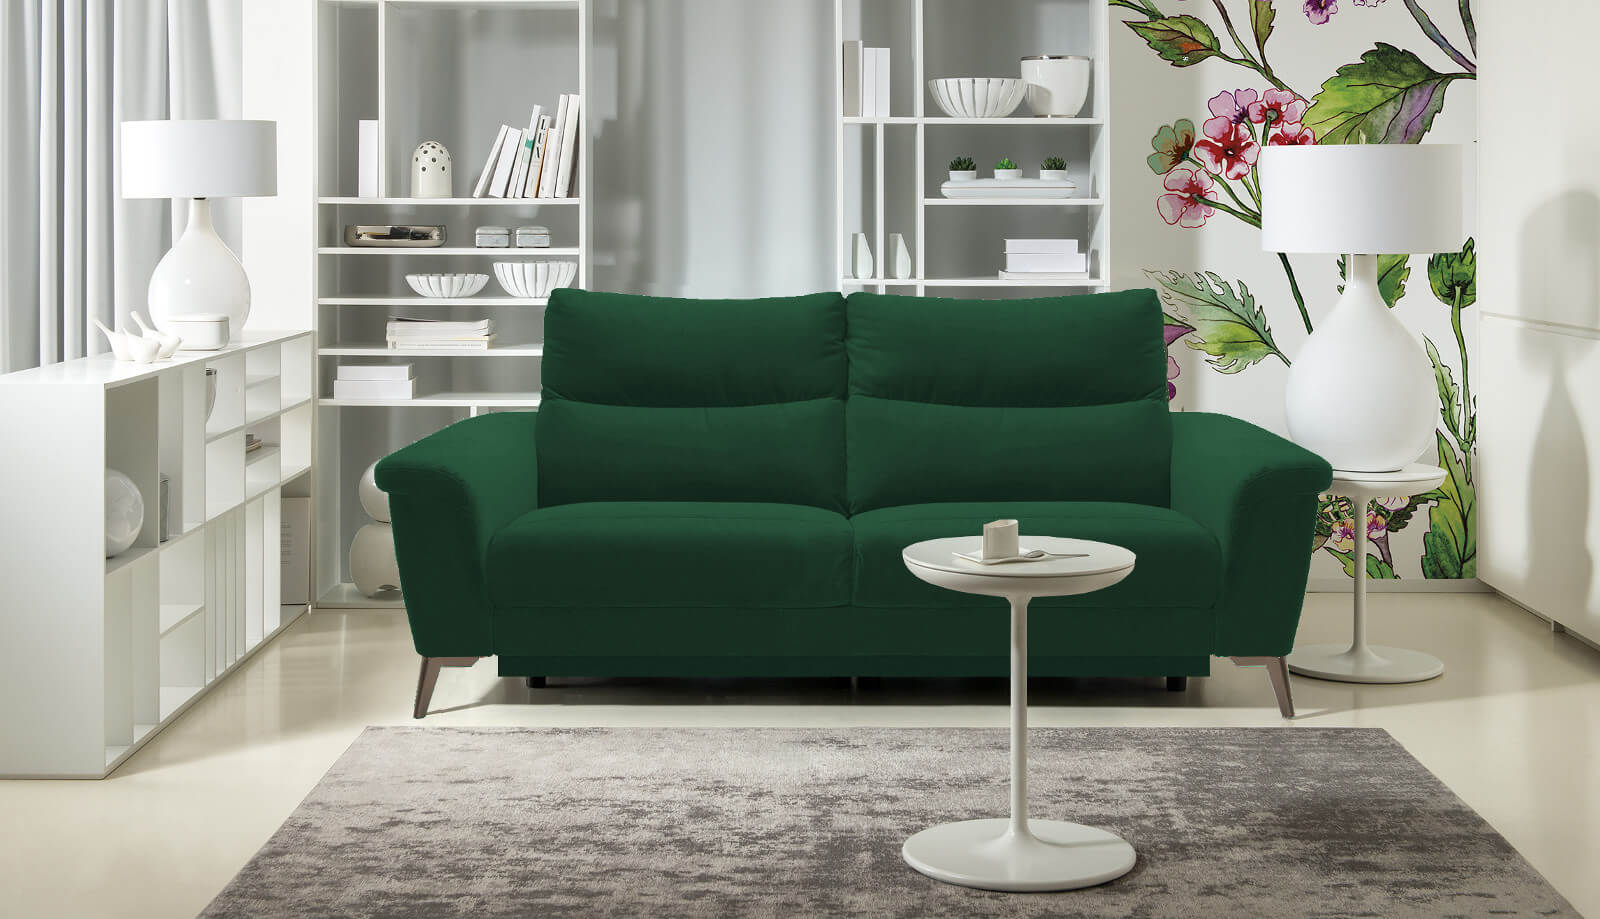 sofa_Verbena_Bellagio_82_1.jpg